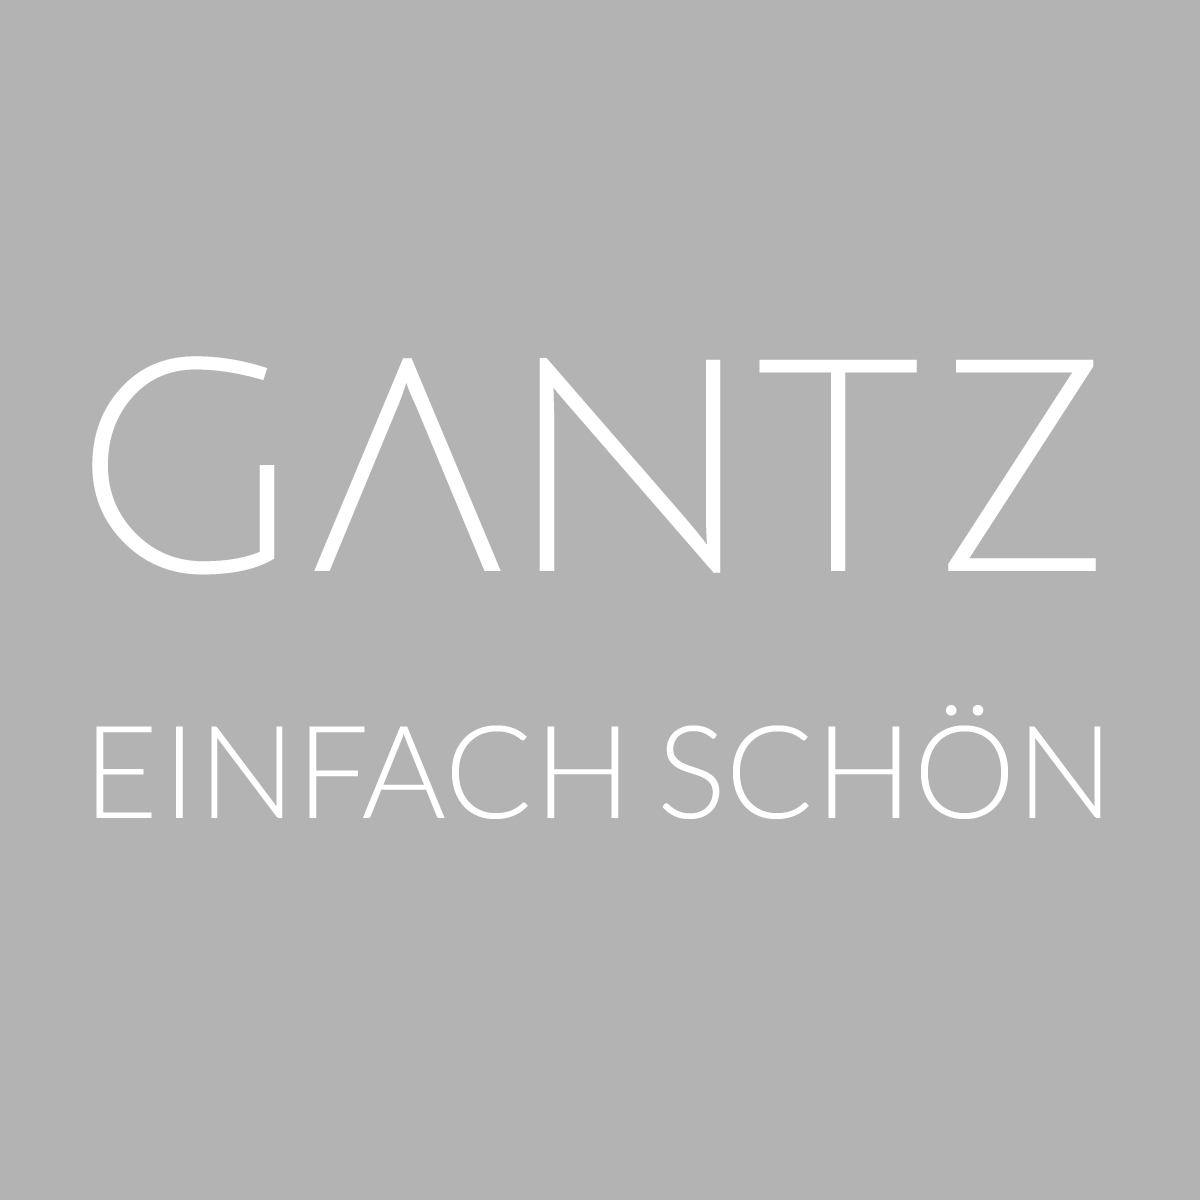 gantz einfach sch n regale nach ma in 10405 berlin. Black Bedroom Furniture Sets. Home Design Ideas